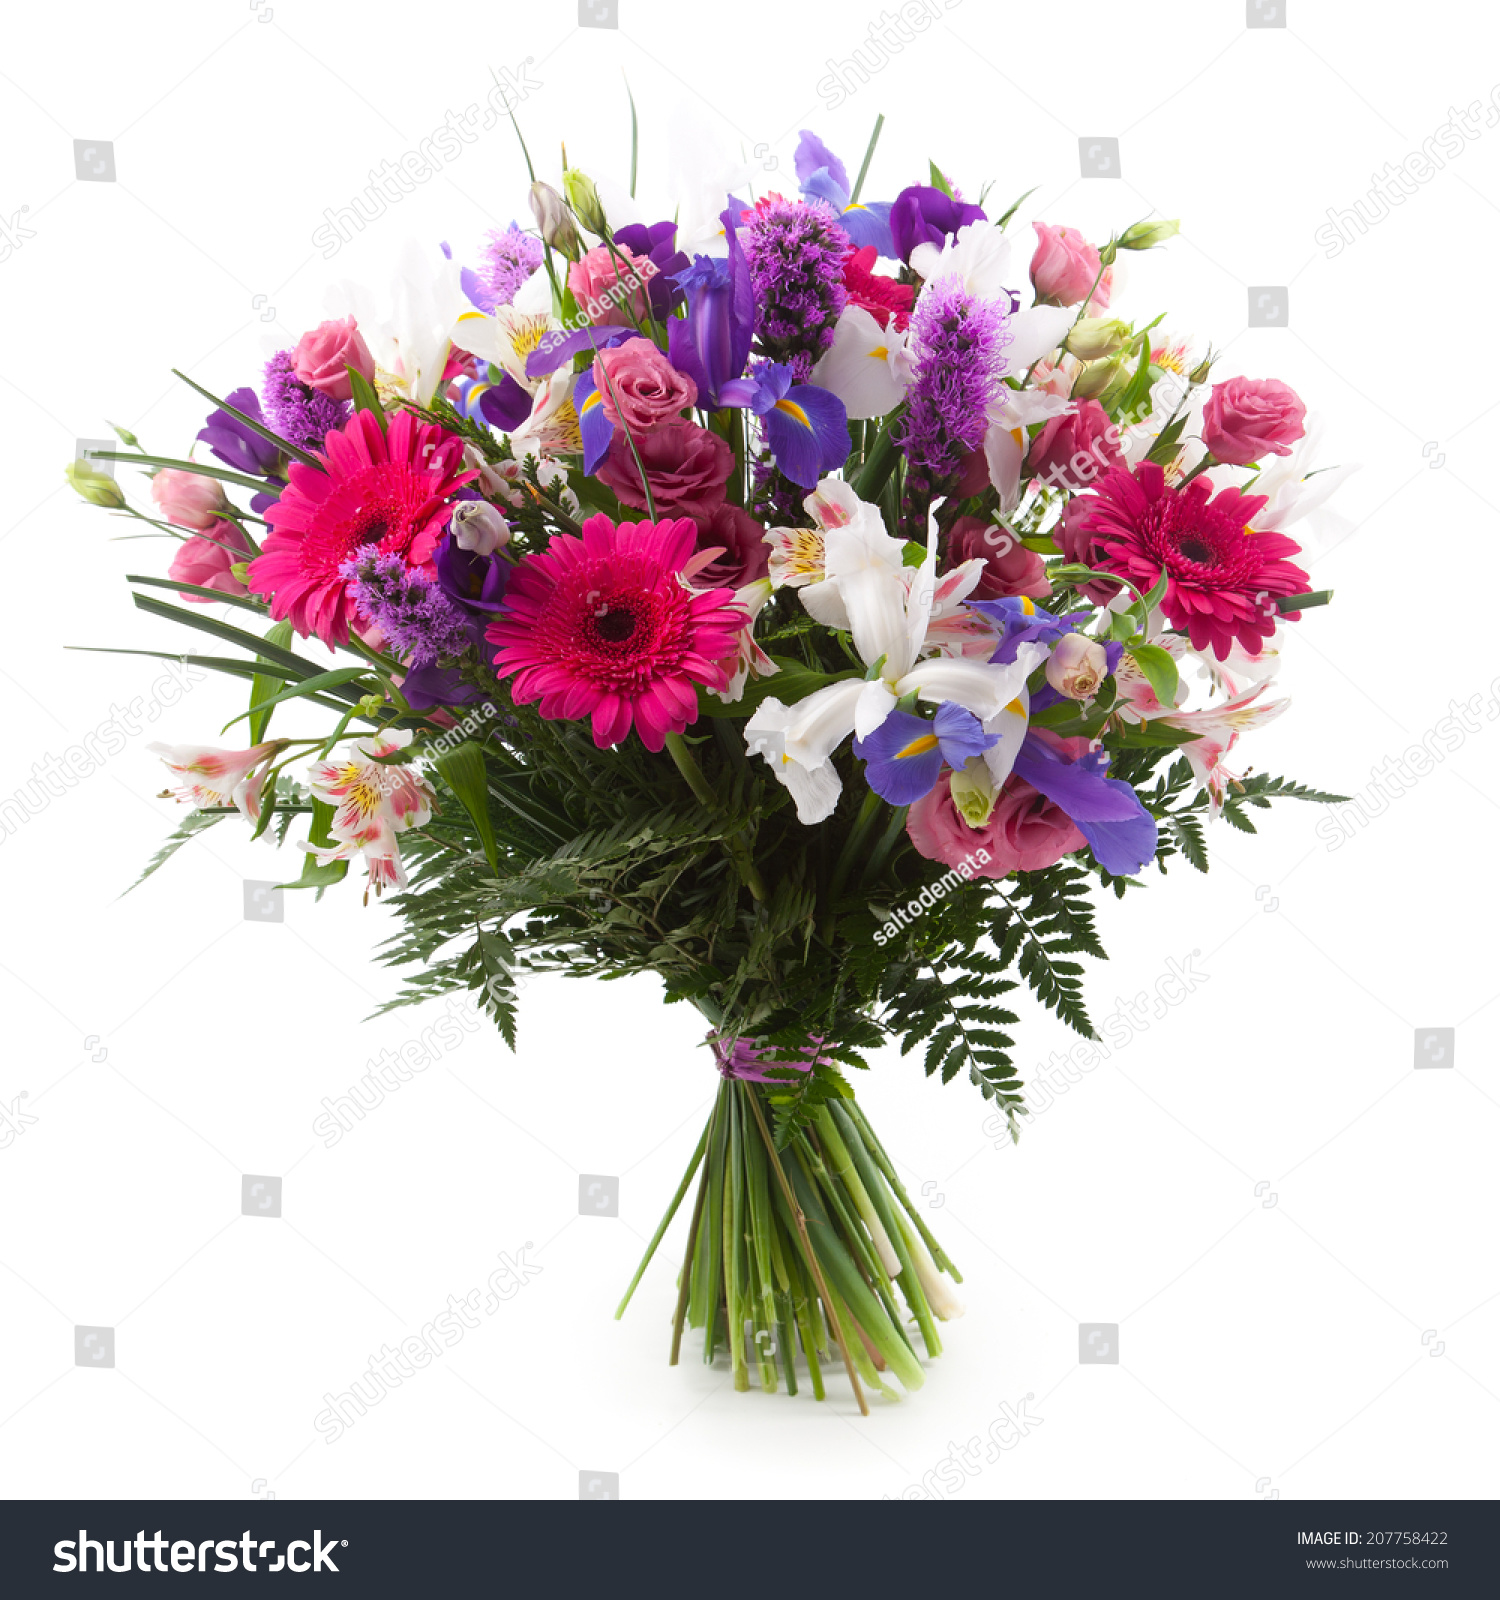 Purple and pink flowers bouquet pink purple and white flowers bouquet stock photo izmirmasajfo Choice Image